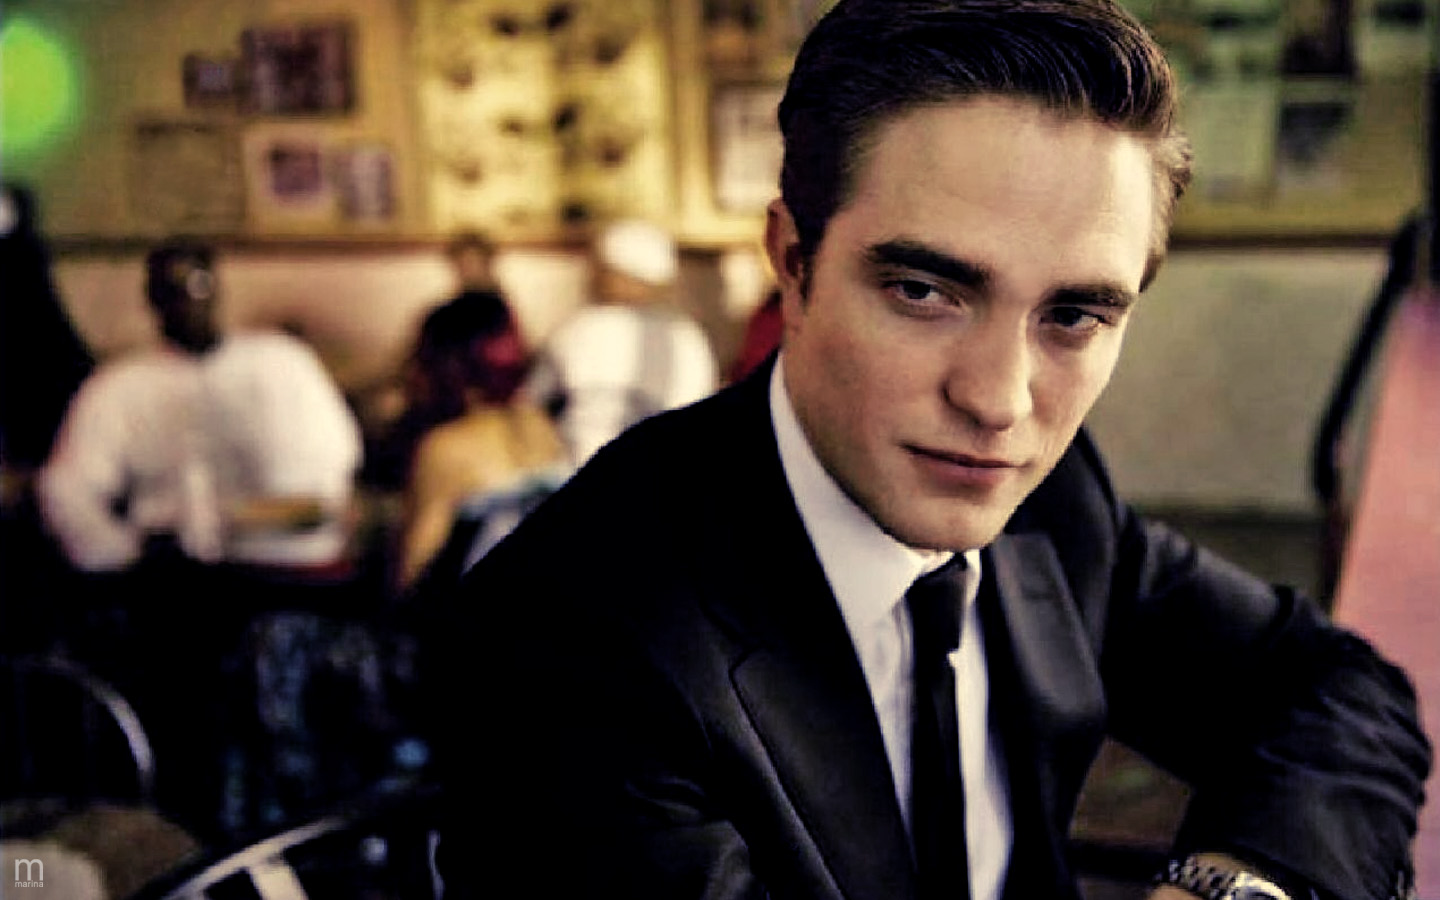 Serie Crepsculo Imgenes Robert Pattinson As Eric Packer In